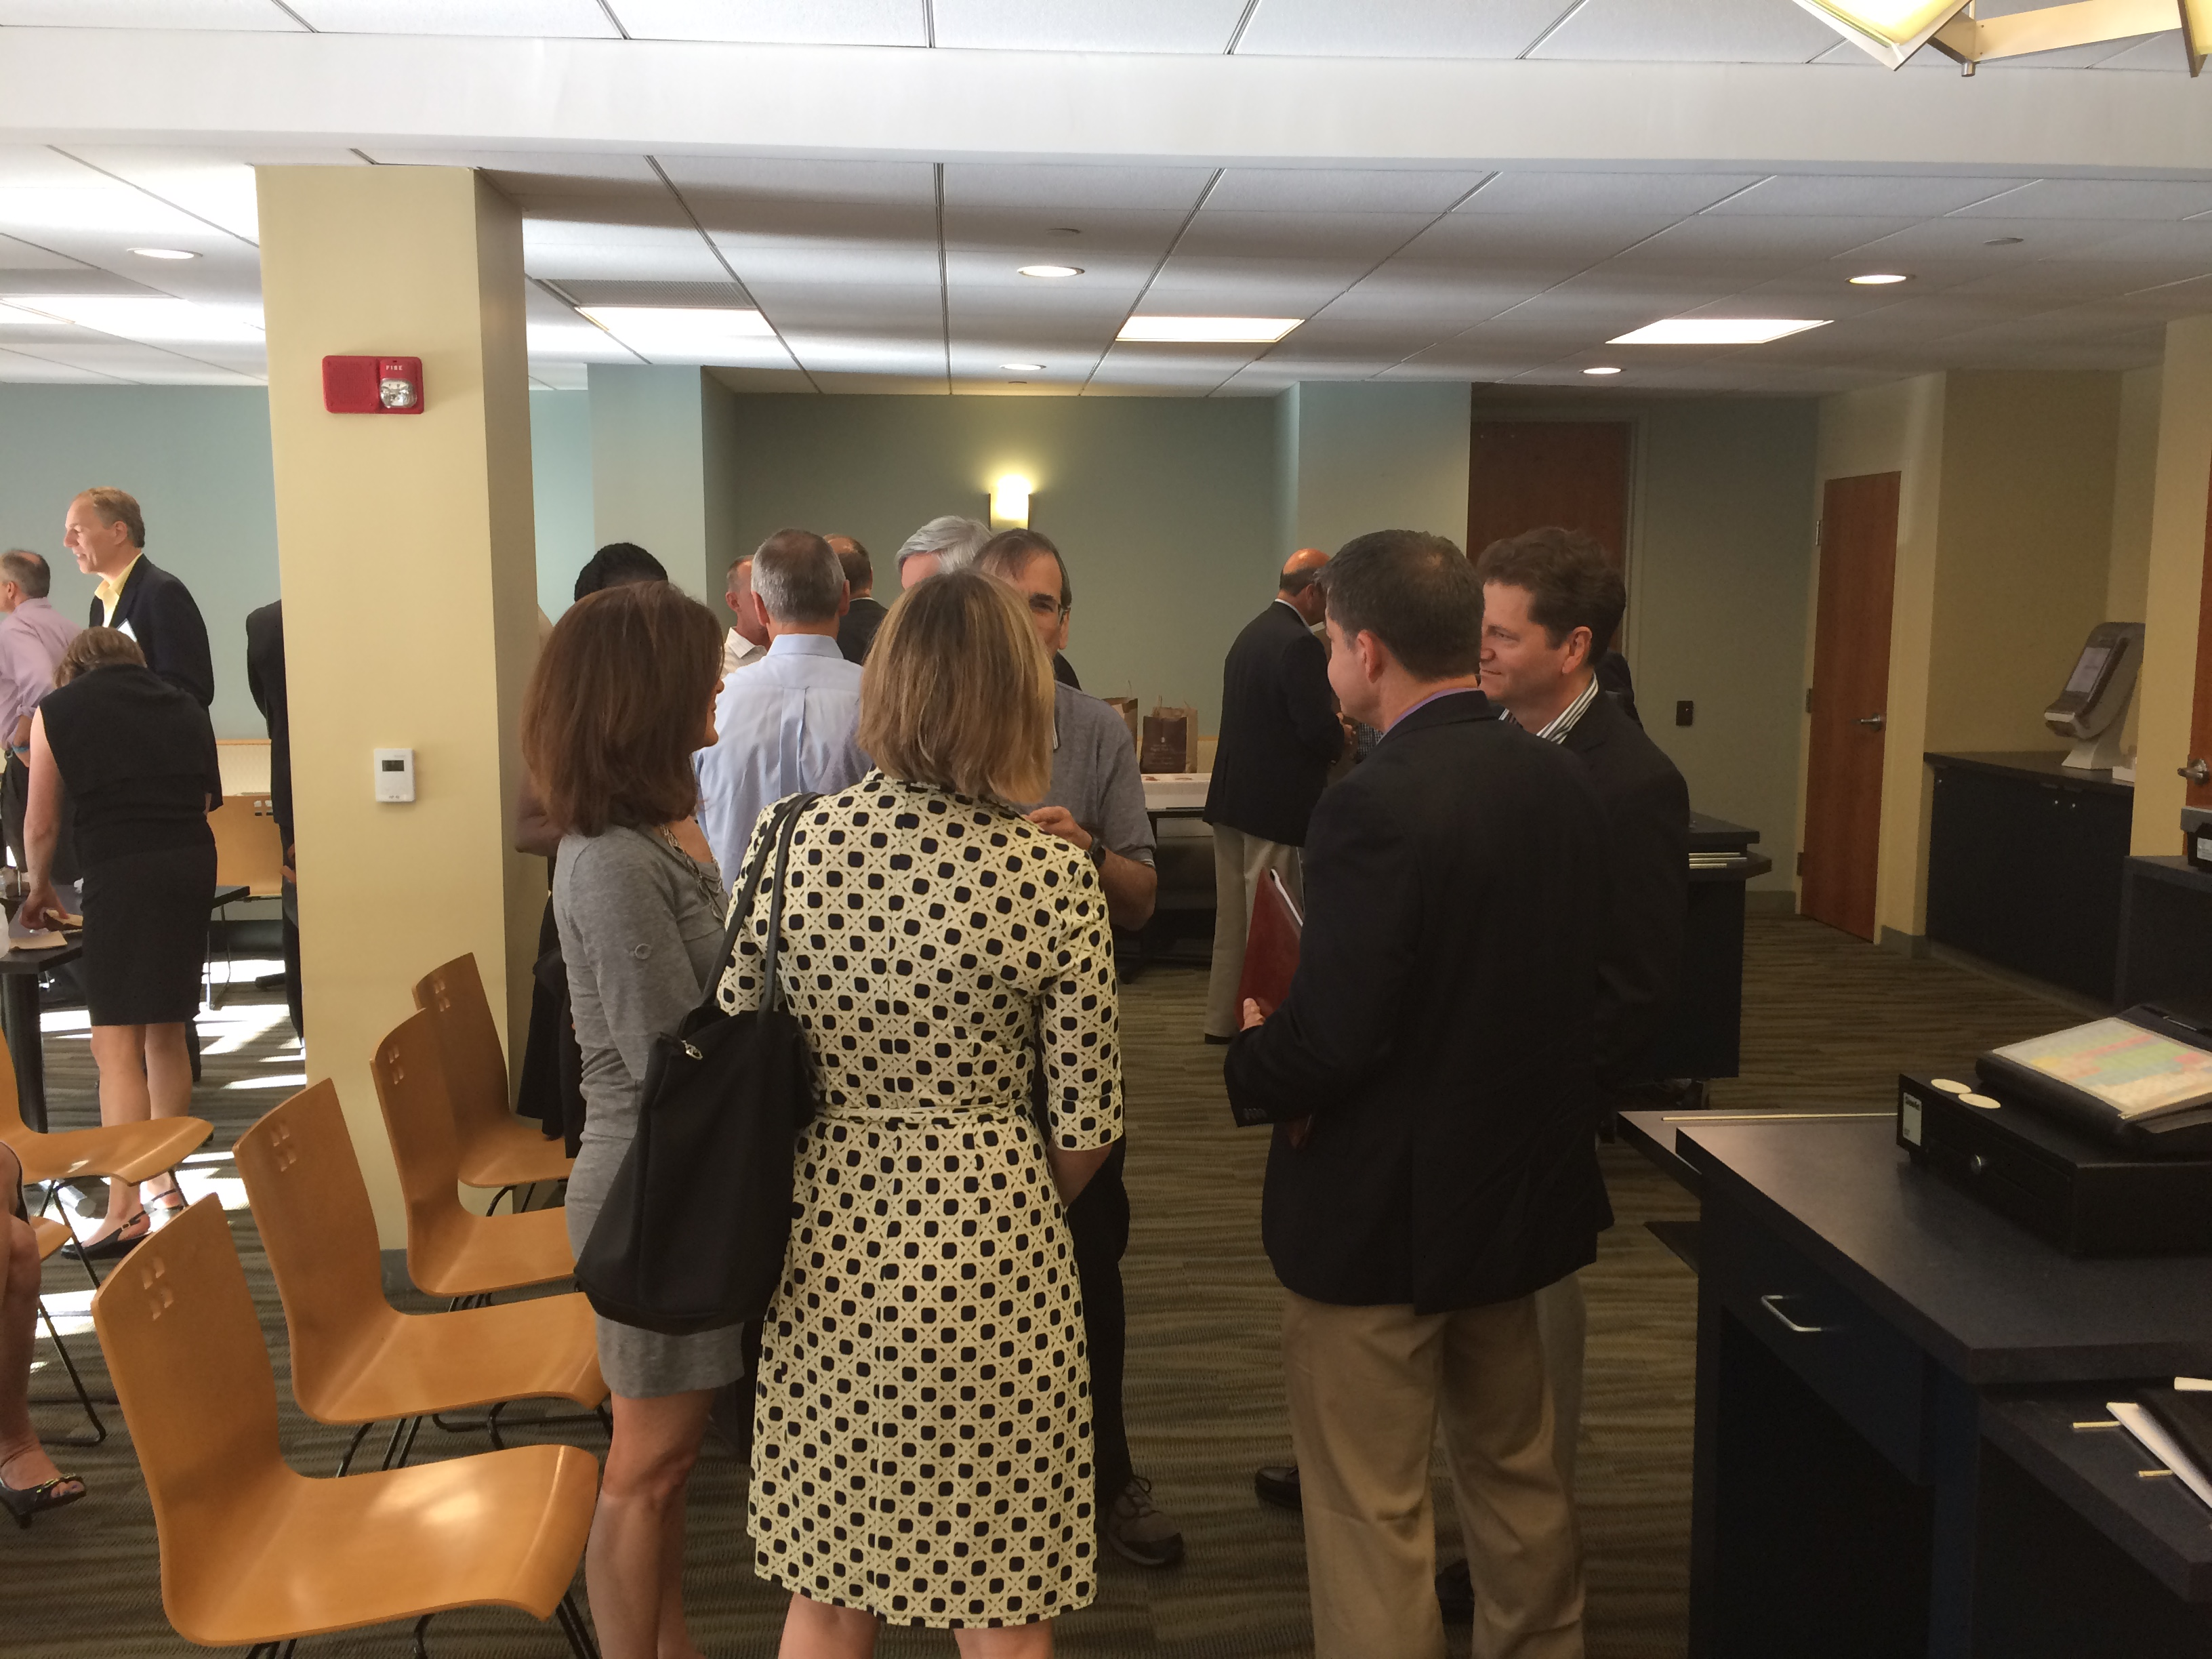 here s what you have missed the summer job search fei boston the evening concluded questions and answers and some time for unstructured networking among the attendees